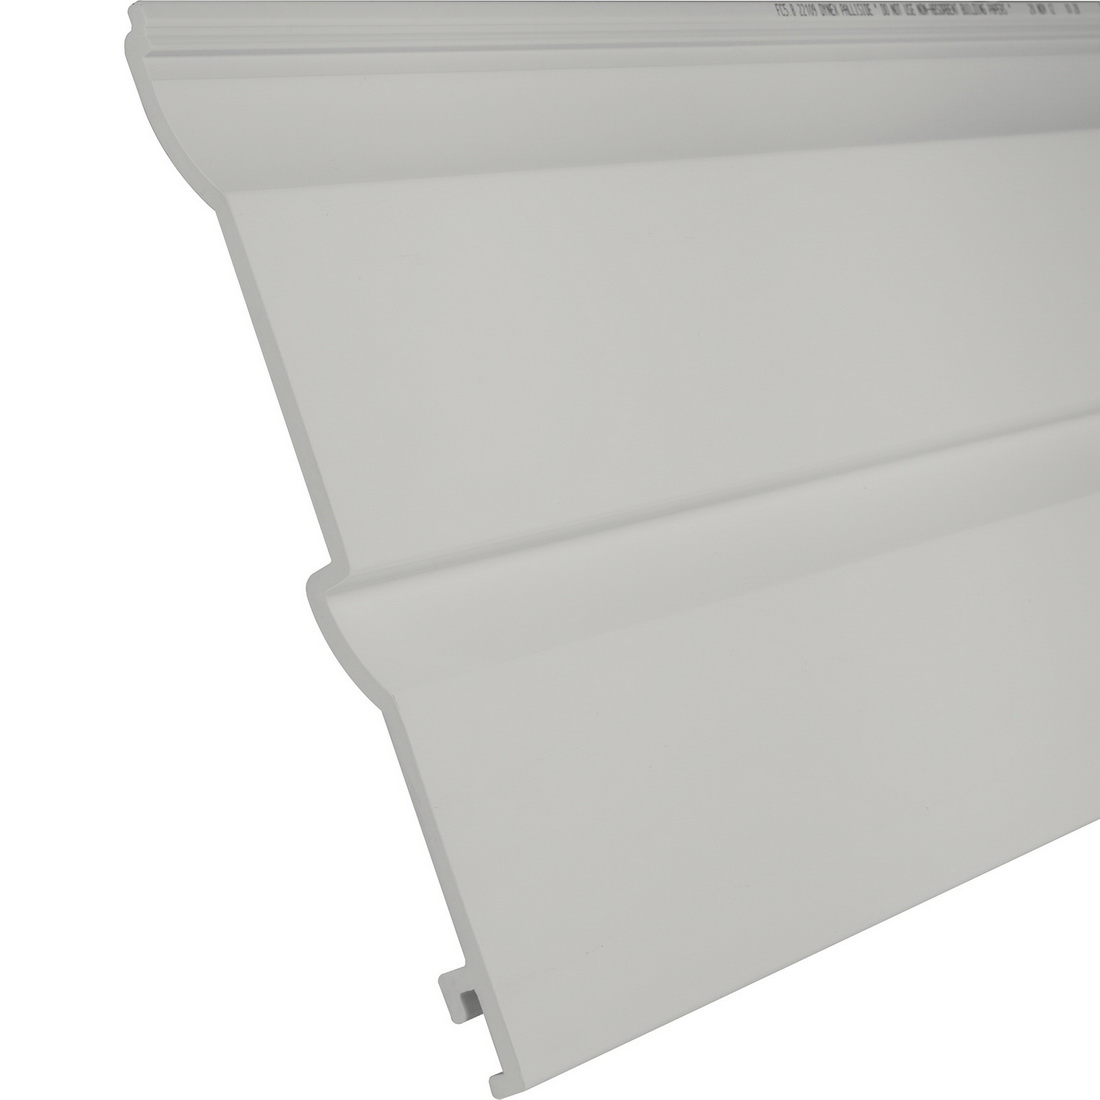 Palliside Traditional Weather Board 6.3 m x 260 mm Unplasticised PVC Riverstone FCTRADRST6.3